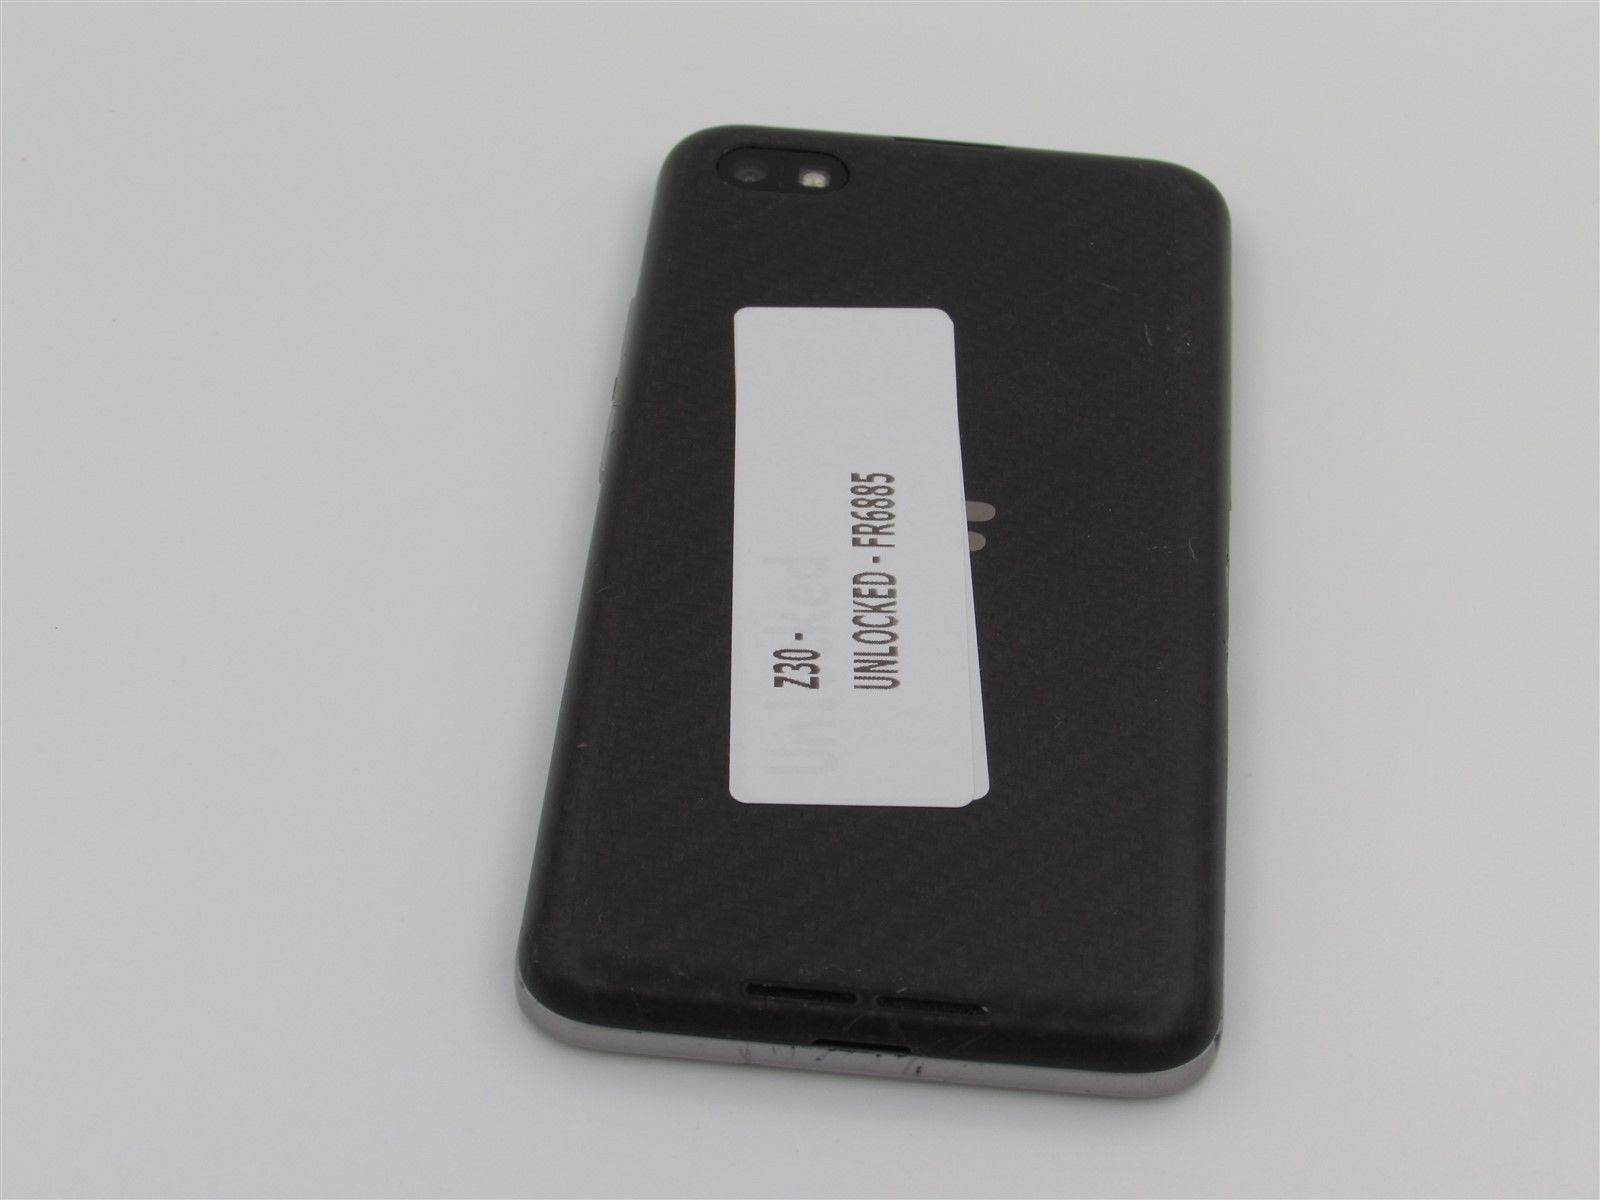 for Blackberry Mobile /for Samsung Mobile Phone /for iPhone